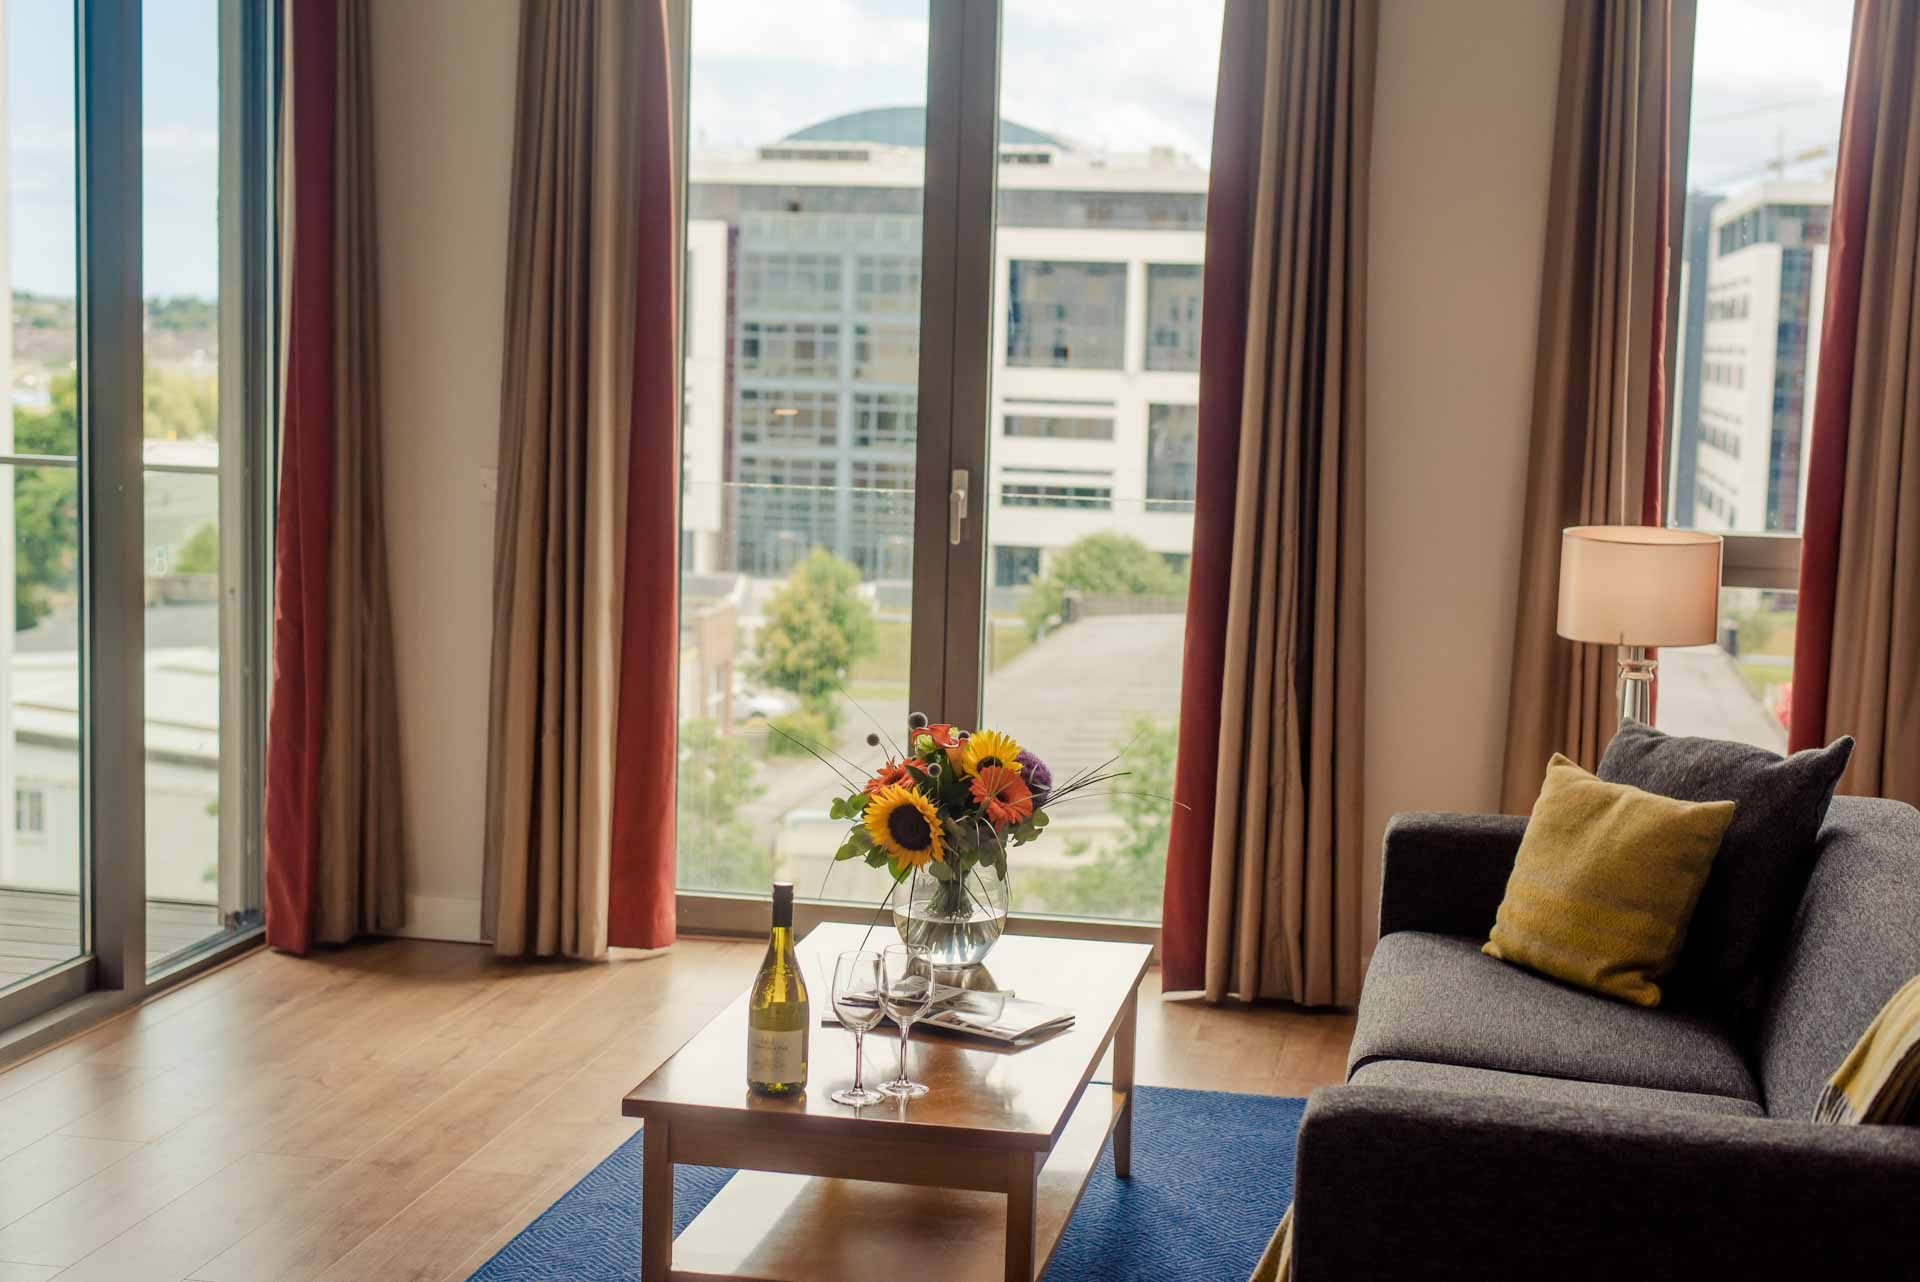 PREMIER SUITES Dublin Sandyford living room view